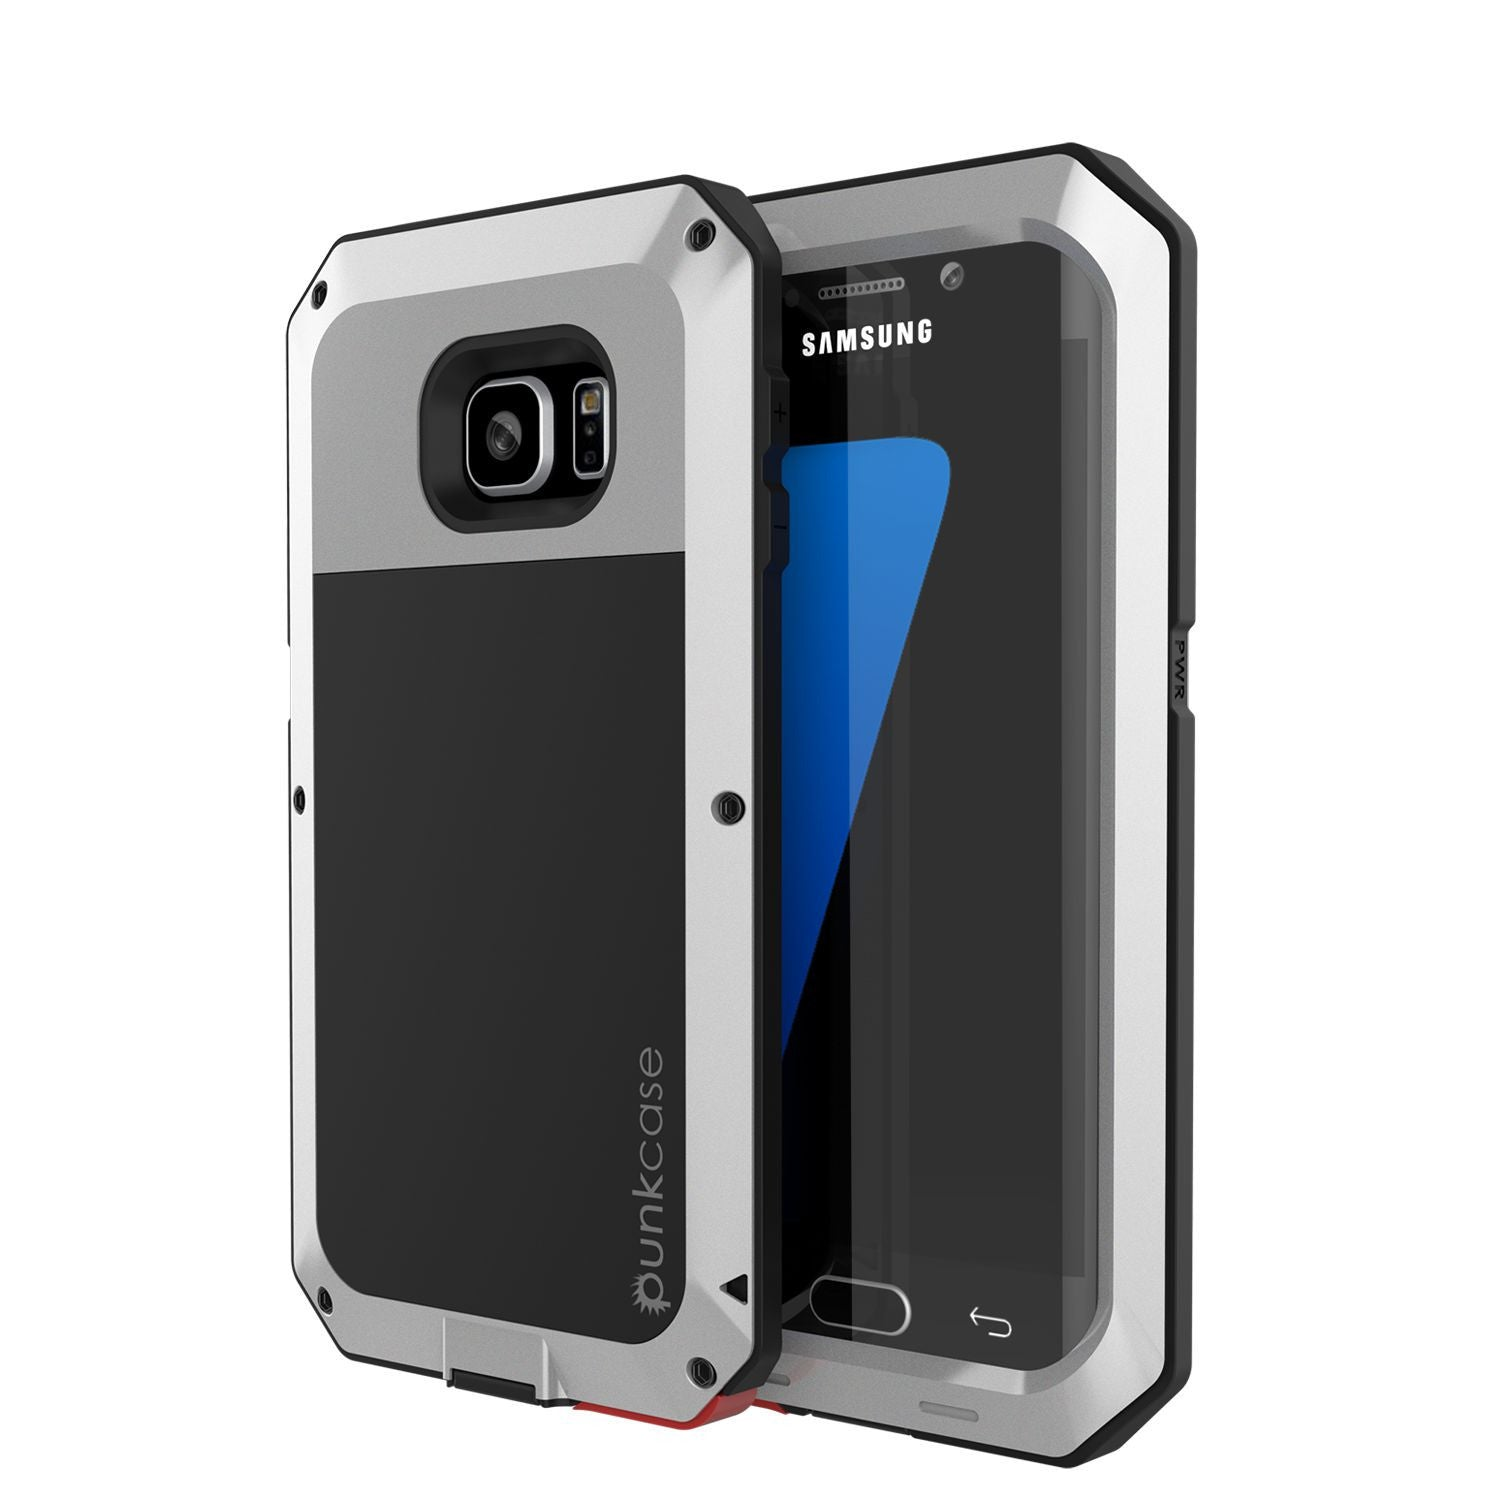 PUNKCASE - Metallic Series Shockproof Armor Case for Samsung S7 Edge | Silver